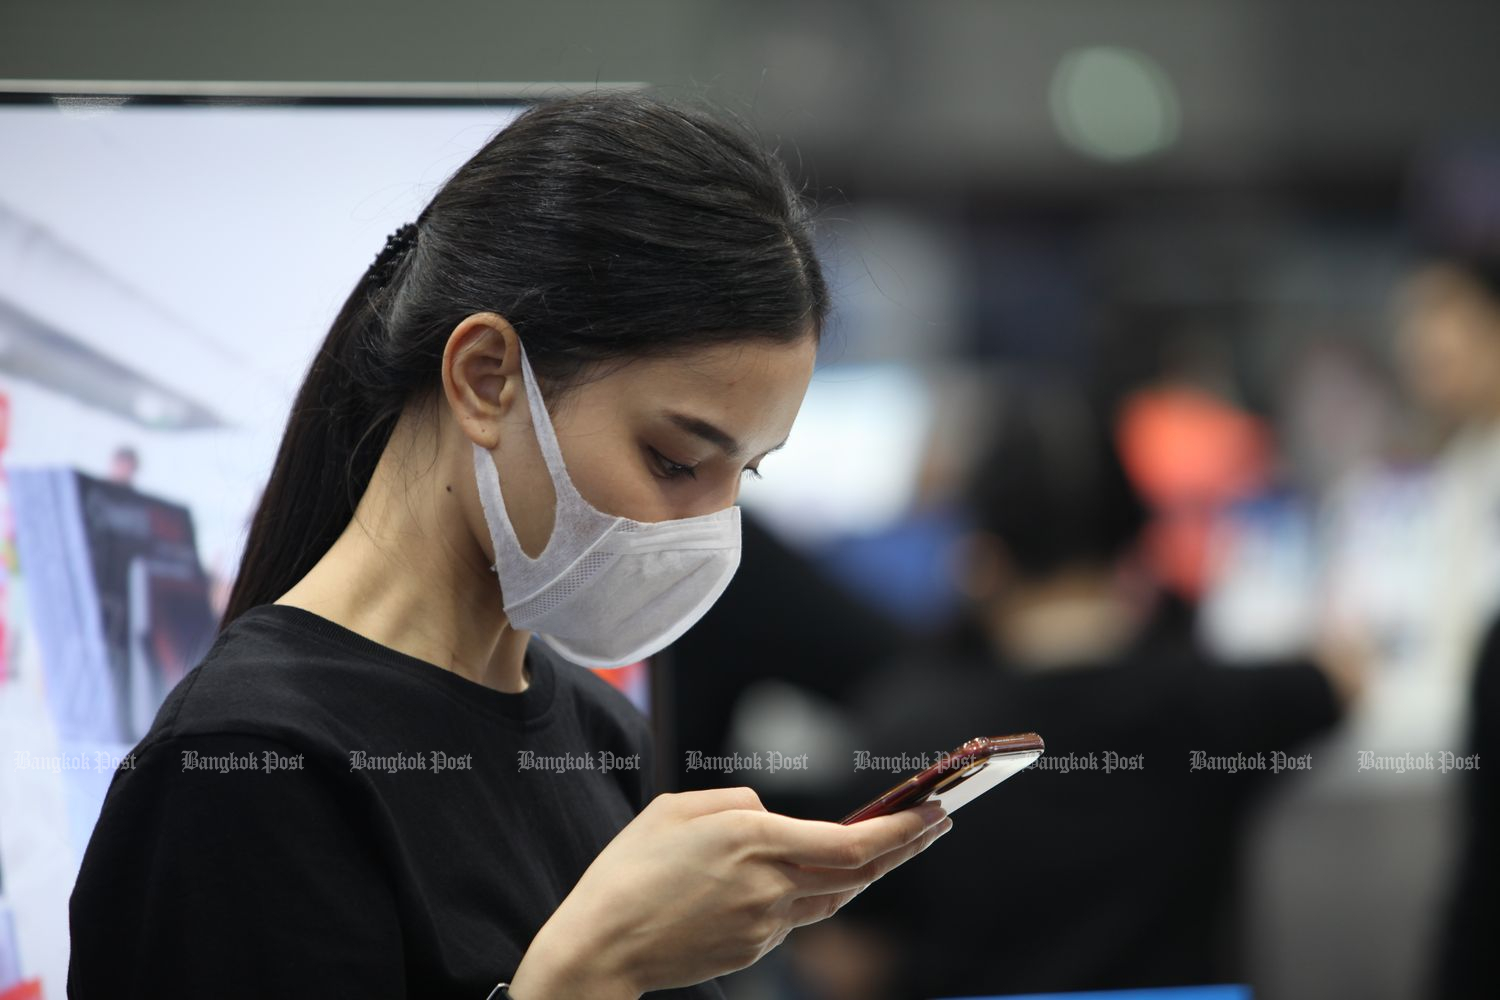 The roll-out of mid-range 5G-enabled smartphones and attractive promotions for new flagship handsets are likely to stoke demand in the local smartphone market in the second half. (Bangkok Post photo)